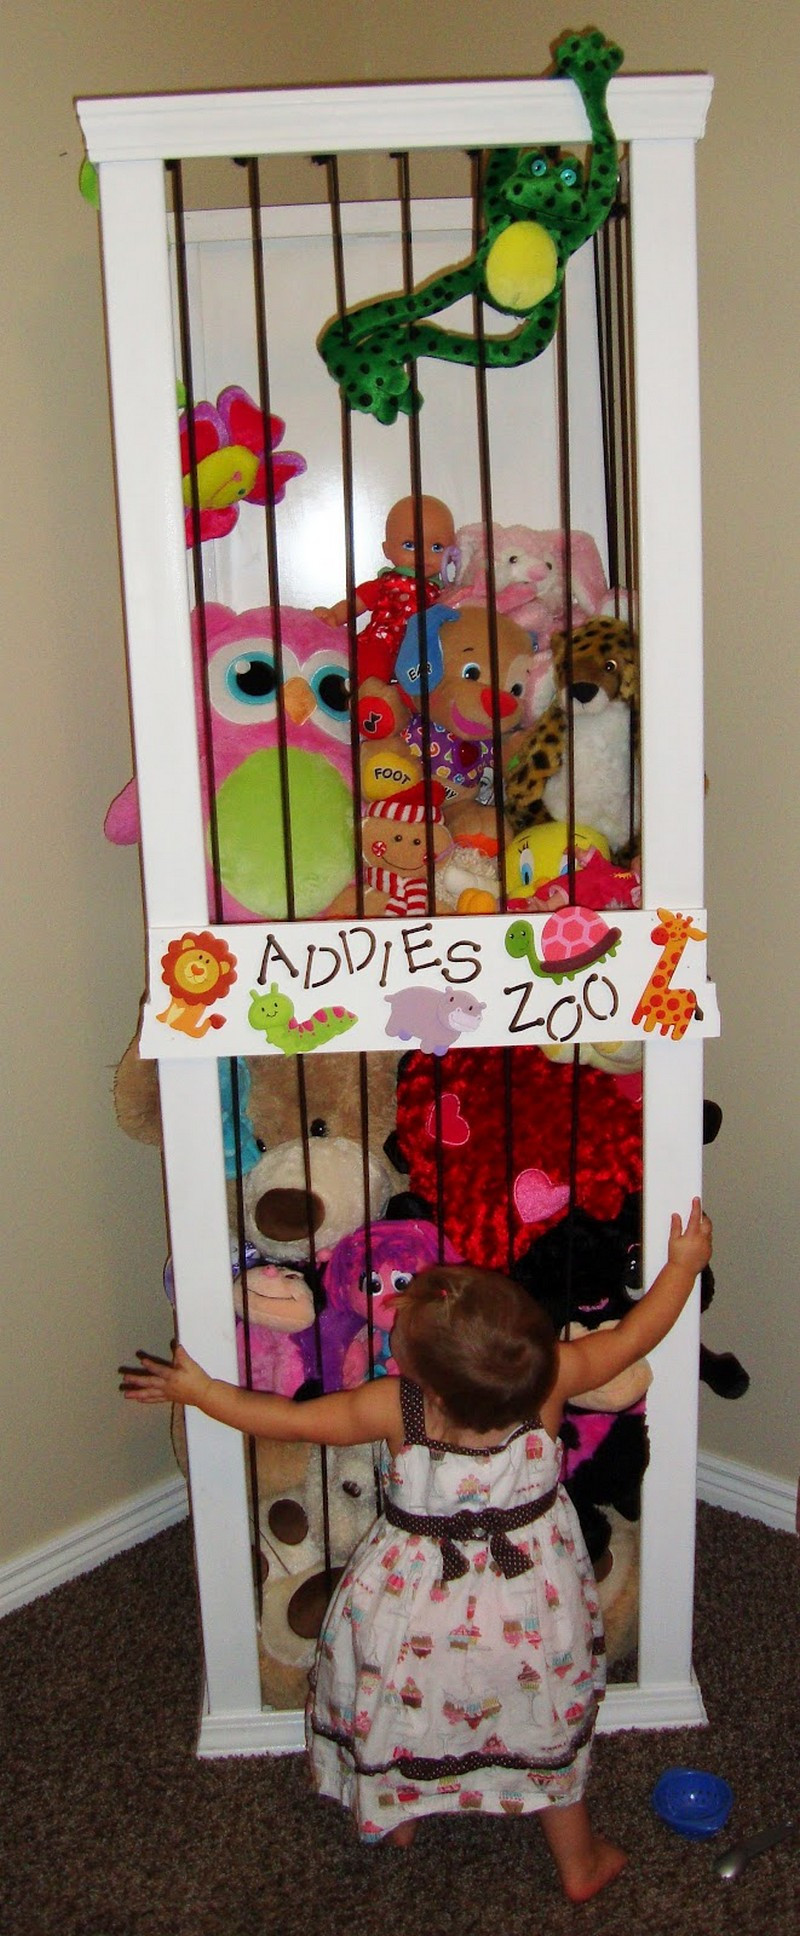 Best ideas about DIY Stuffed Animal . Save or Pin DIY Stuffed Animal Zoo – The Owner Builder Network Now.